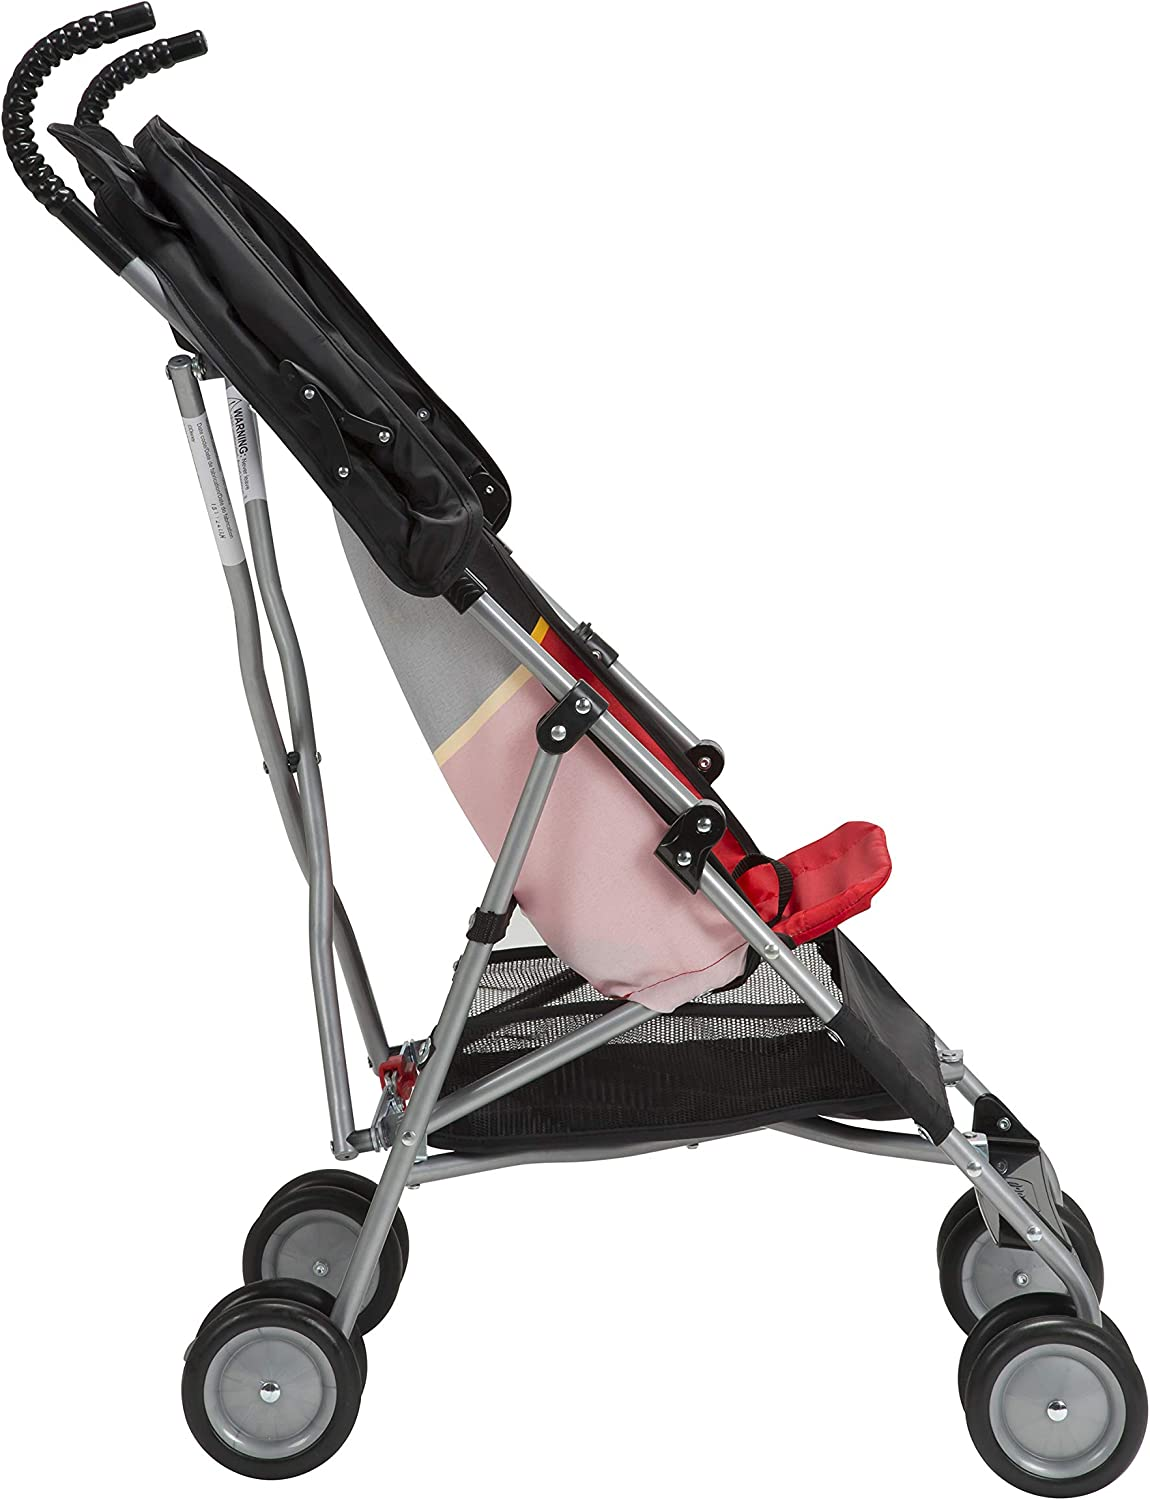 Mickey Disney Umbrella Stroller with Basket